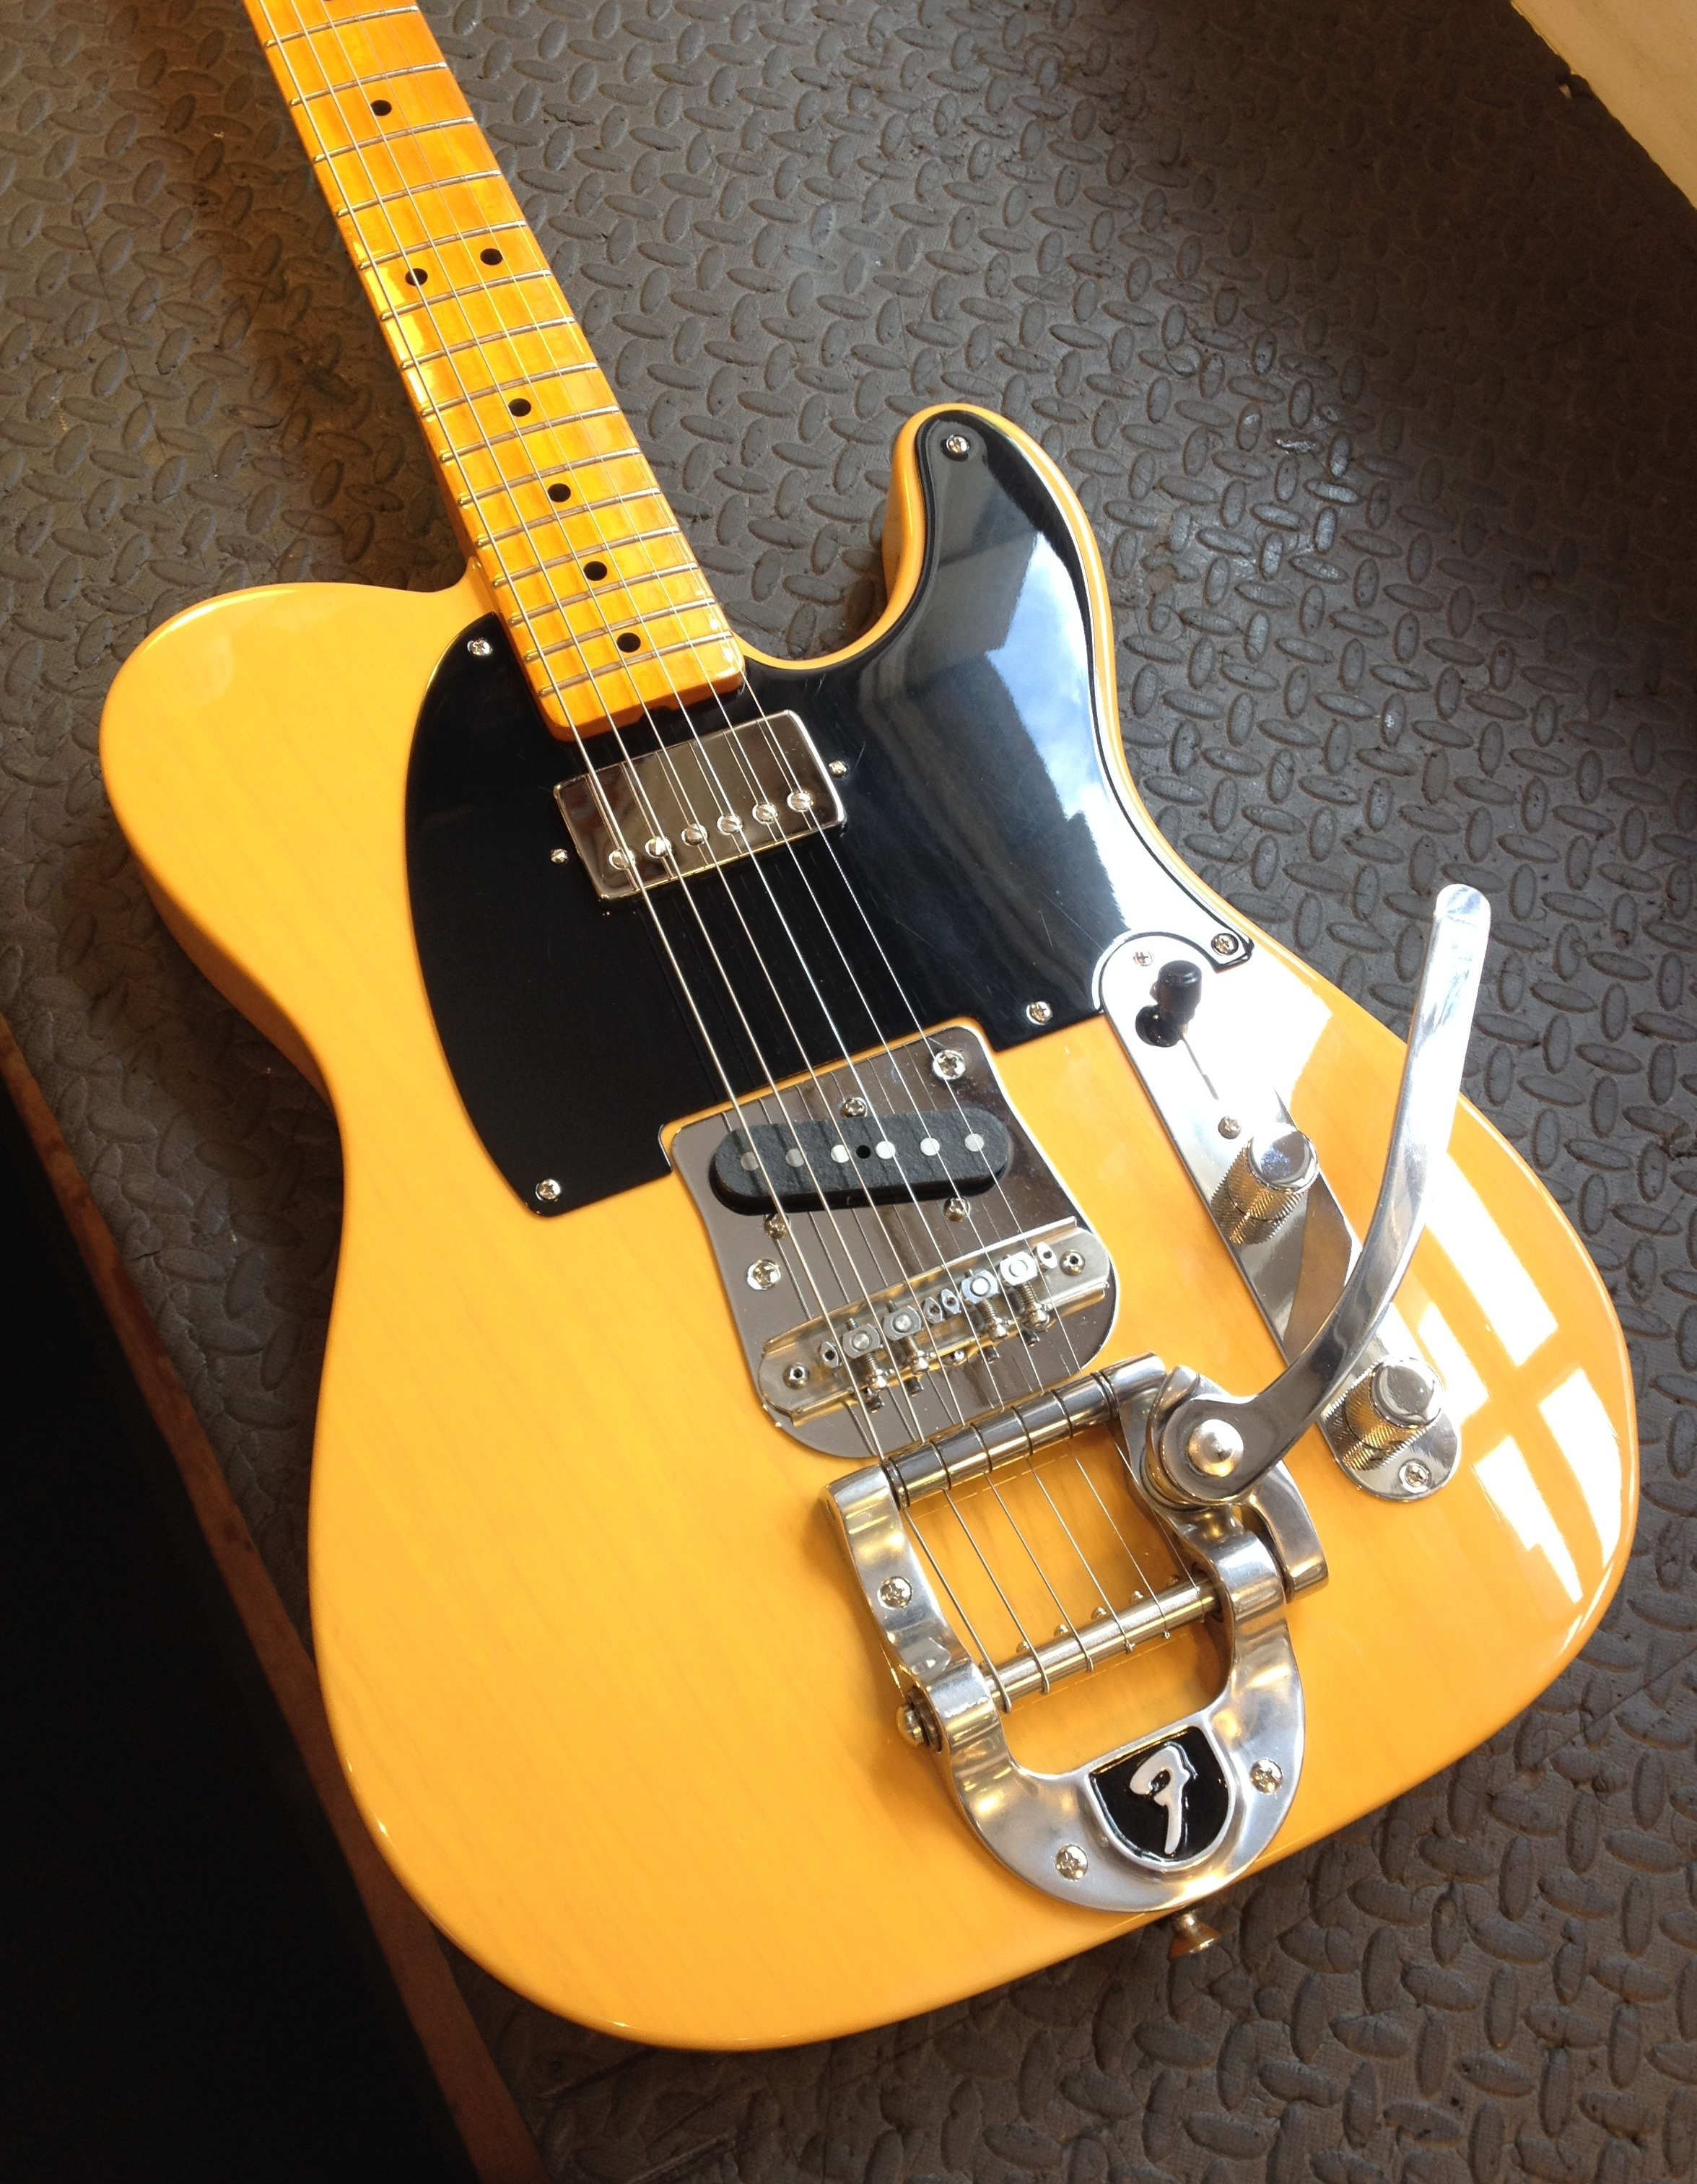 Well it was a custom shop '52 Telecaster but after extensive modification it is truly something individual!